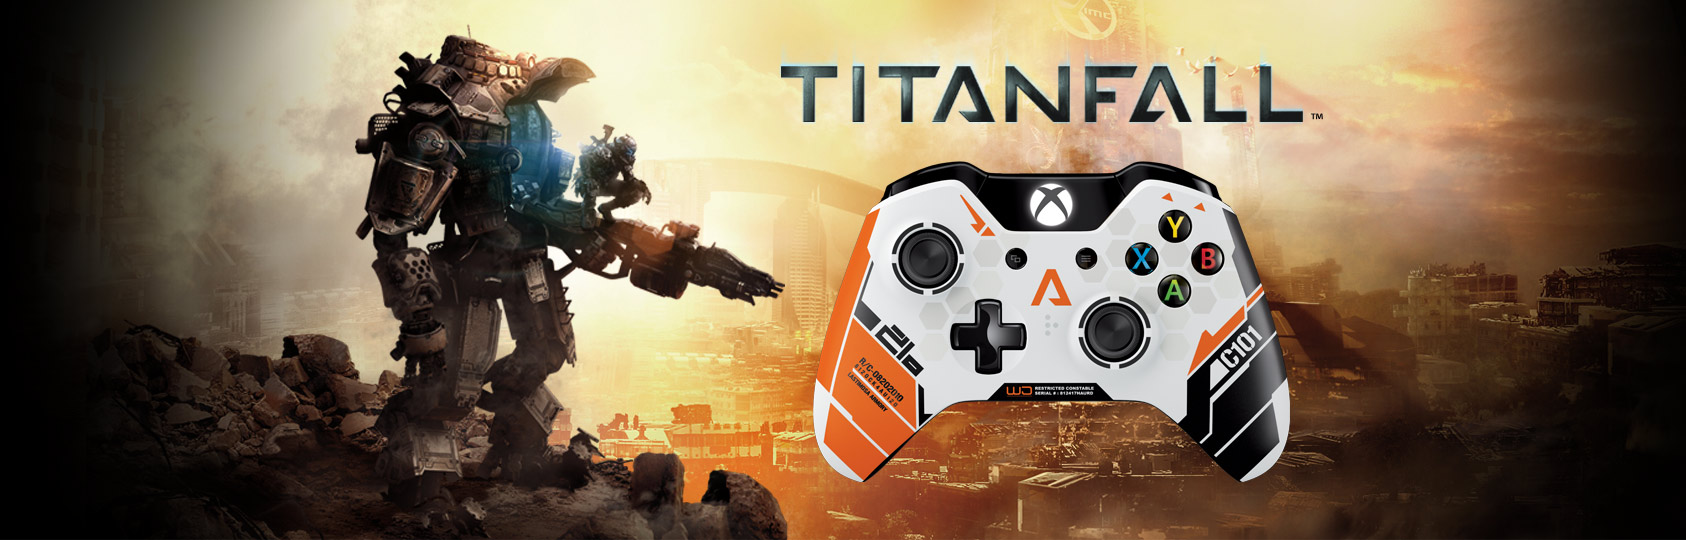 Especificação - Xbox One Titanfall Limited Edition Wireless Controller